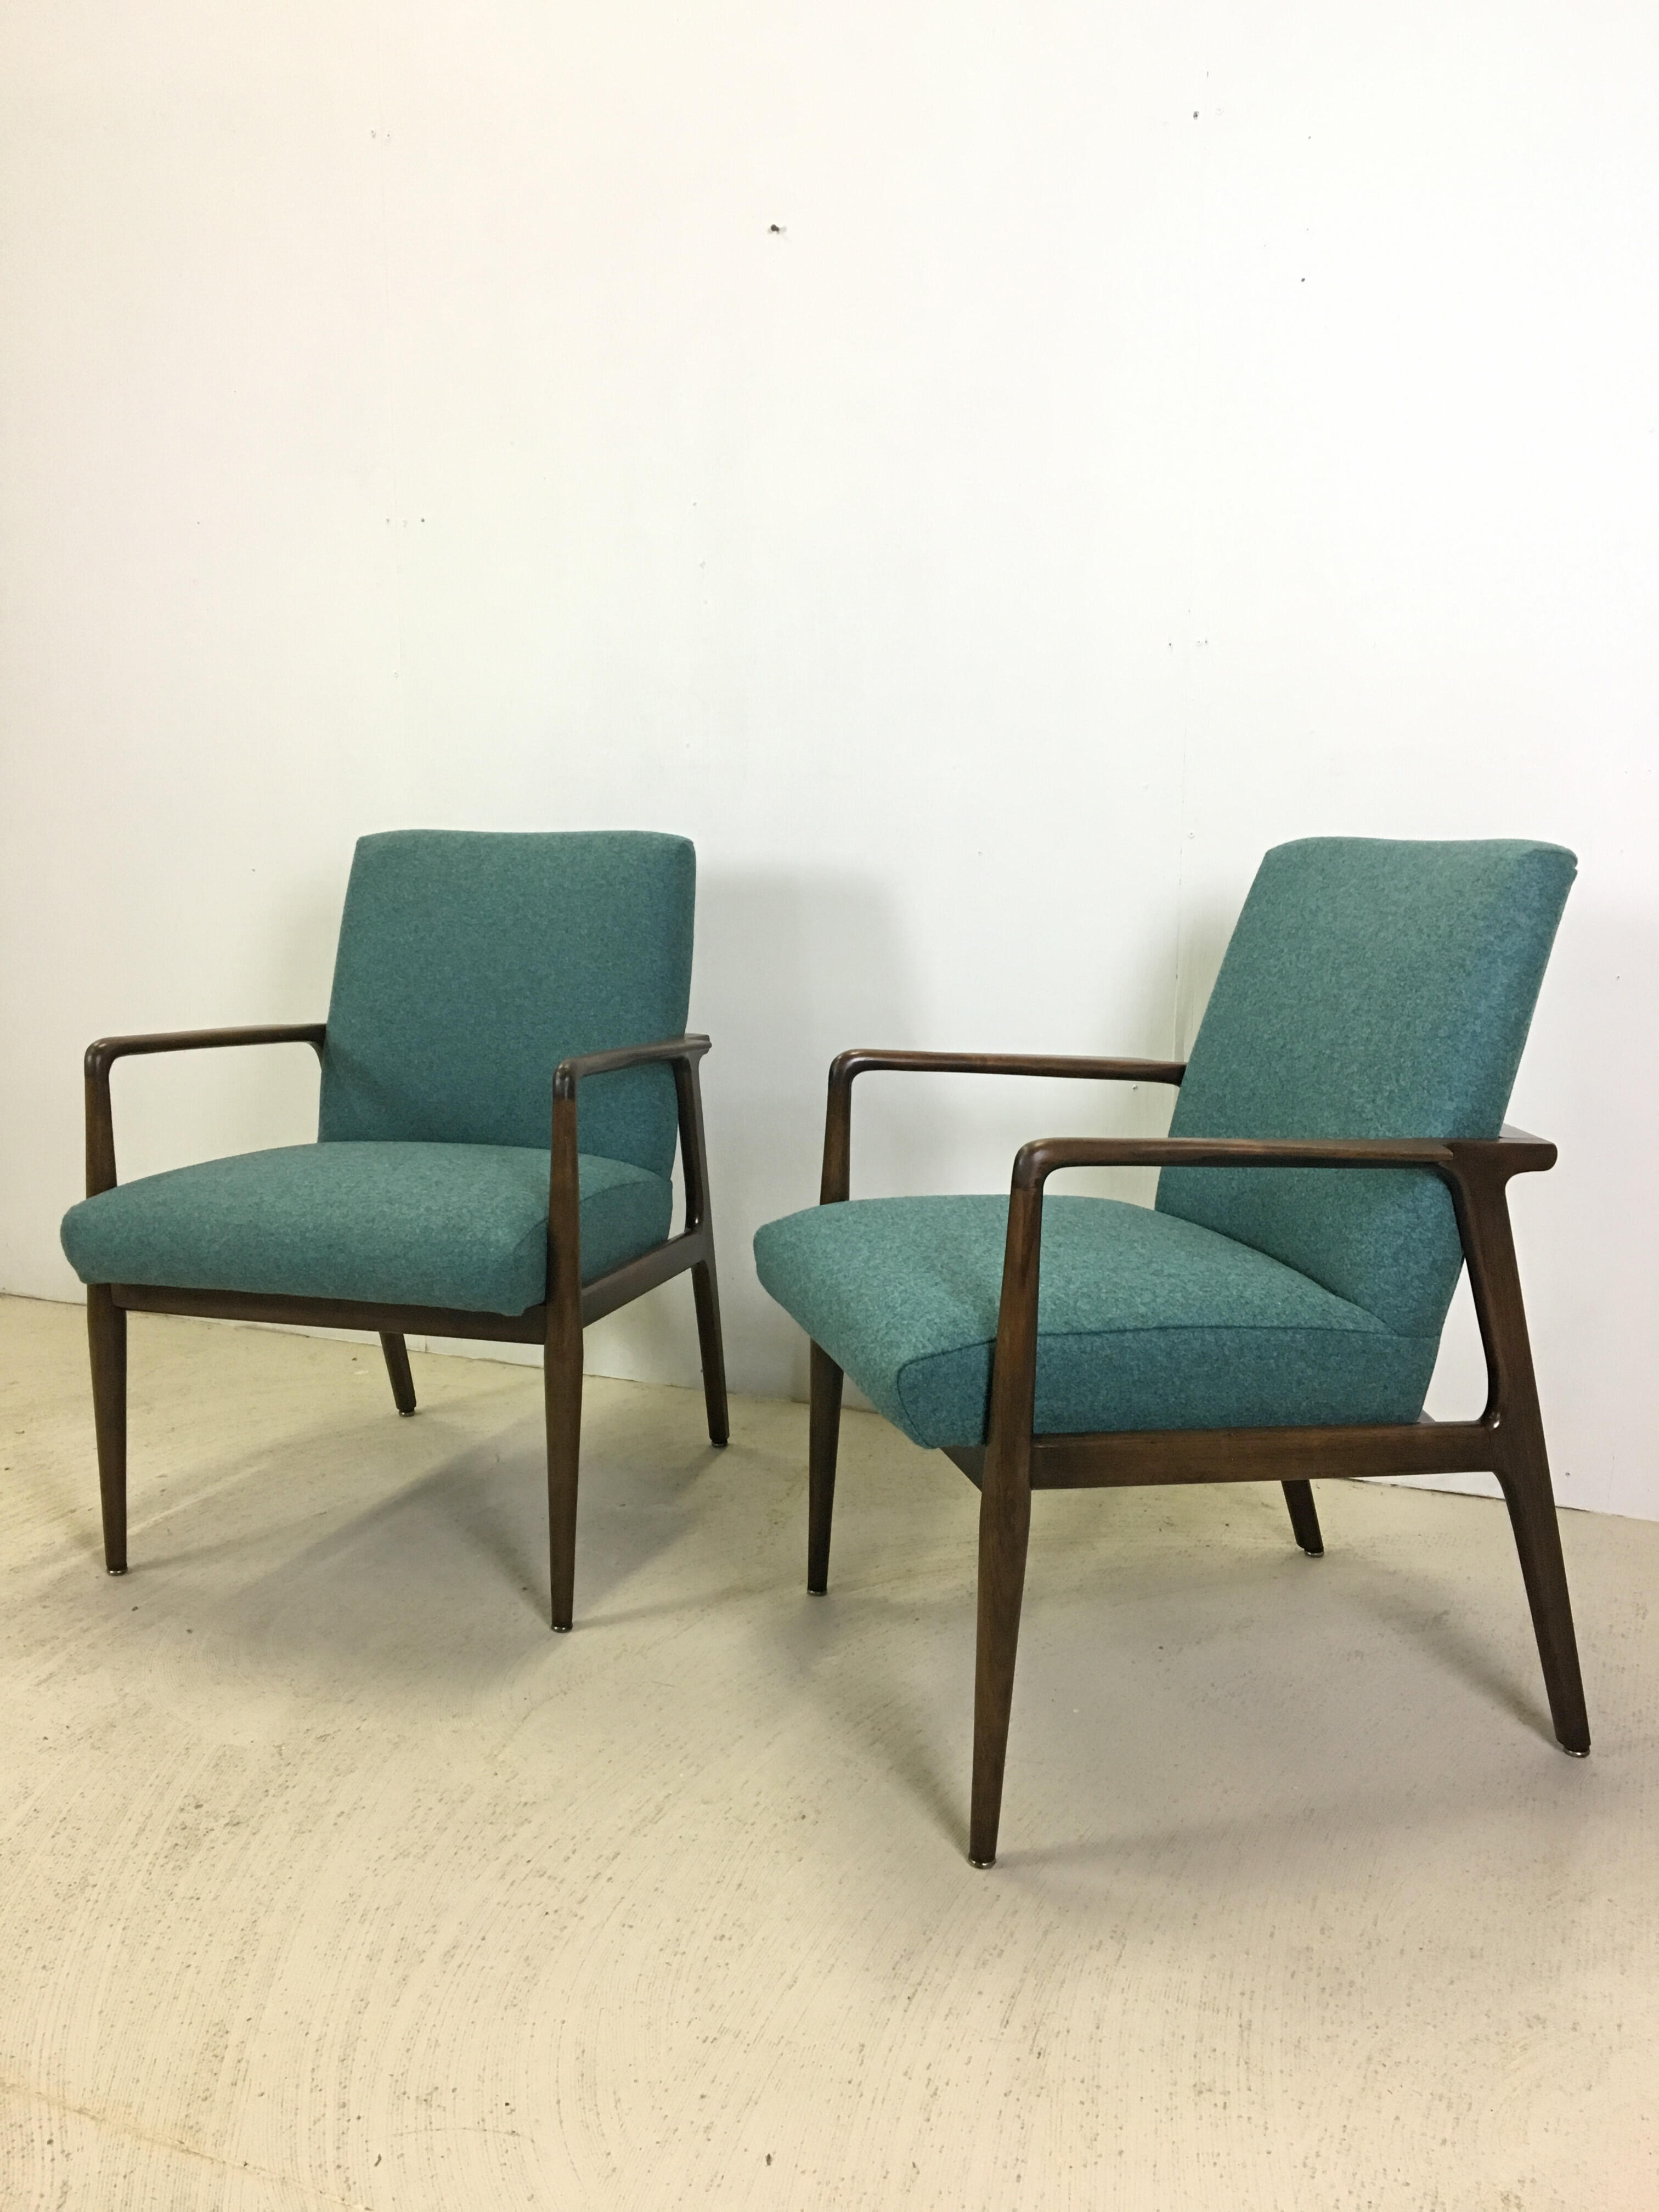 Pair of Upholstered Lounge Chairs for Stow & Davis